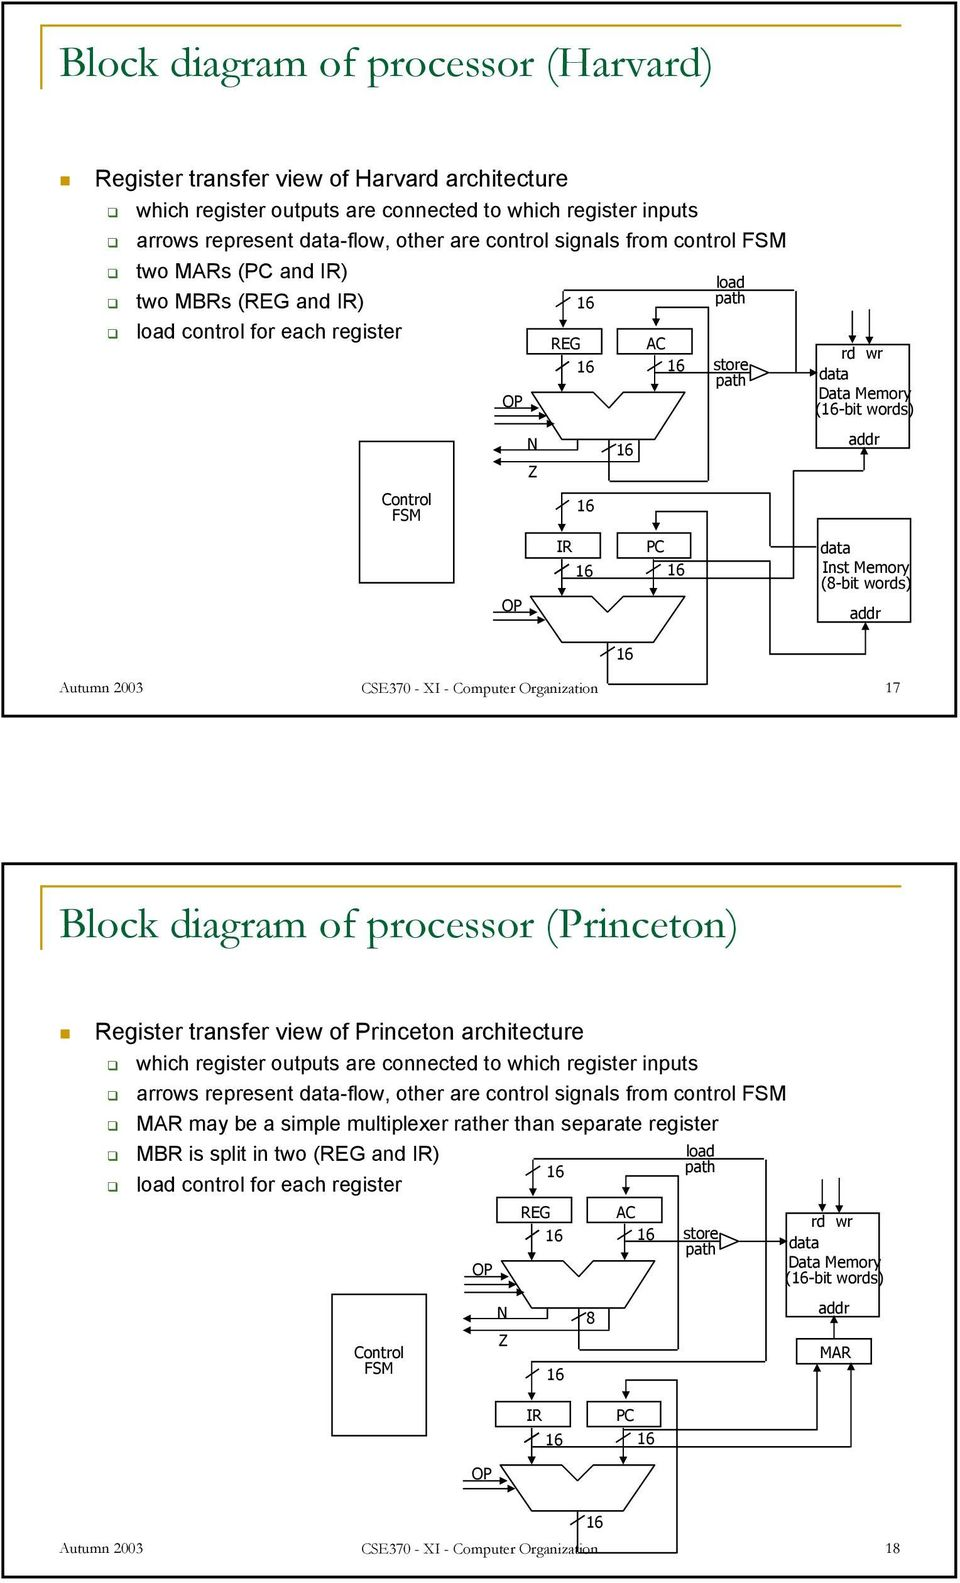 Memory (8-bit words) addr Autumn 2003 CSE370 - XI - Computer Organization 17 Block diagram of processor (Princeton) Register transfer view of Princeton architecture which register outputs are